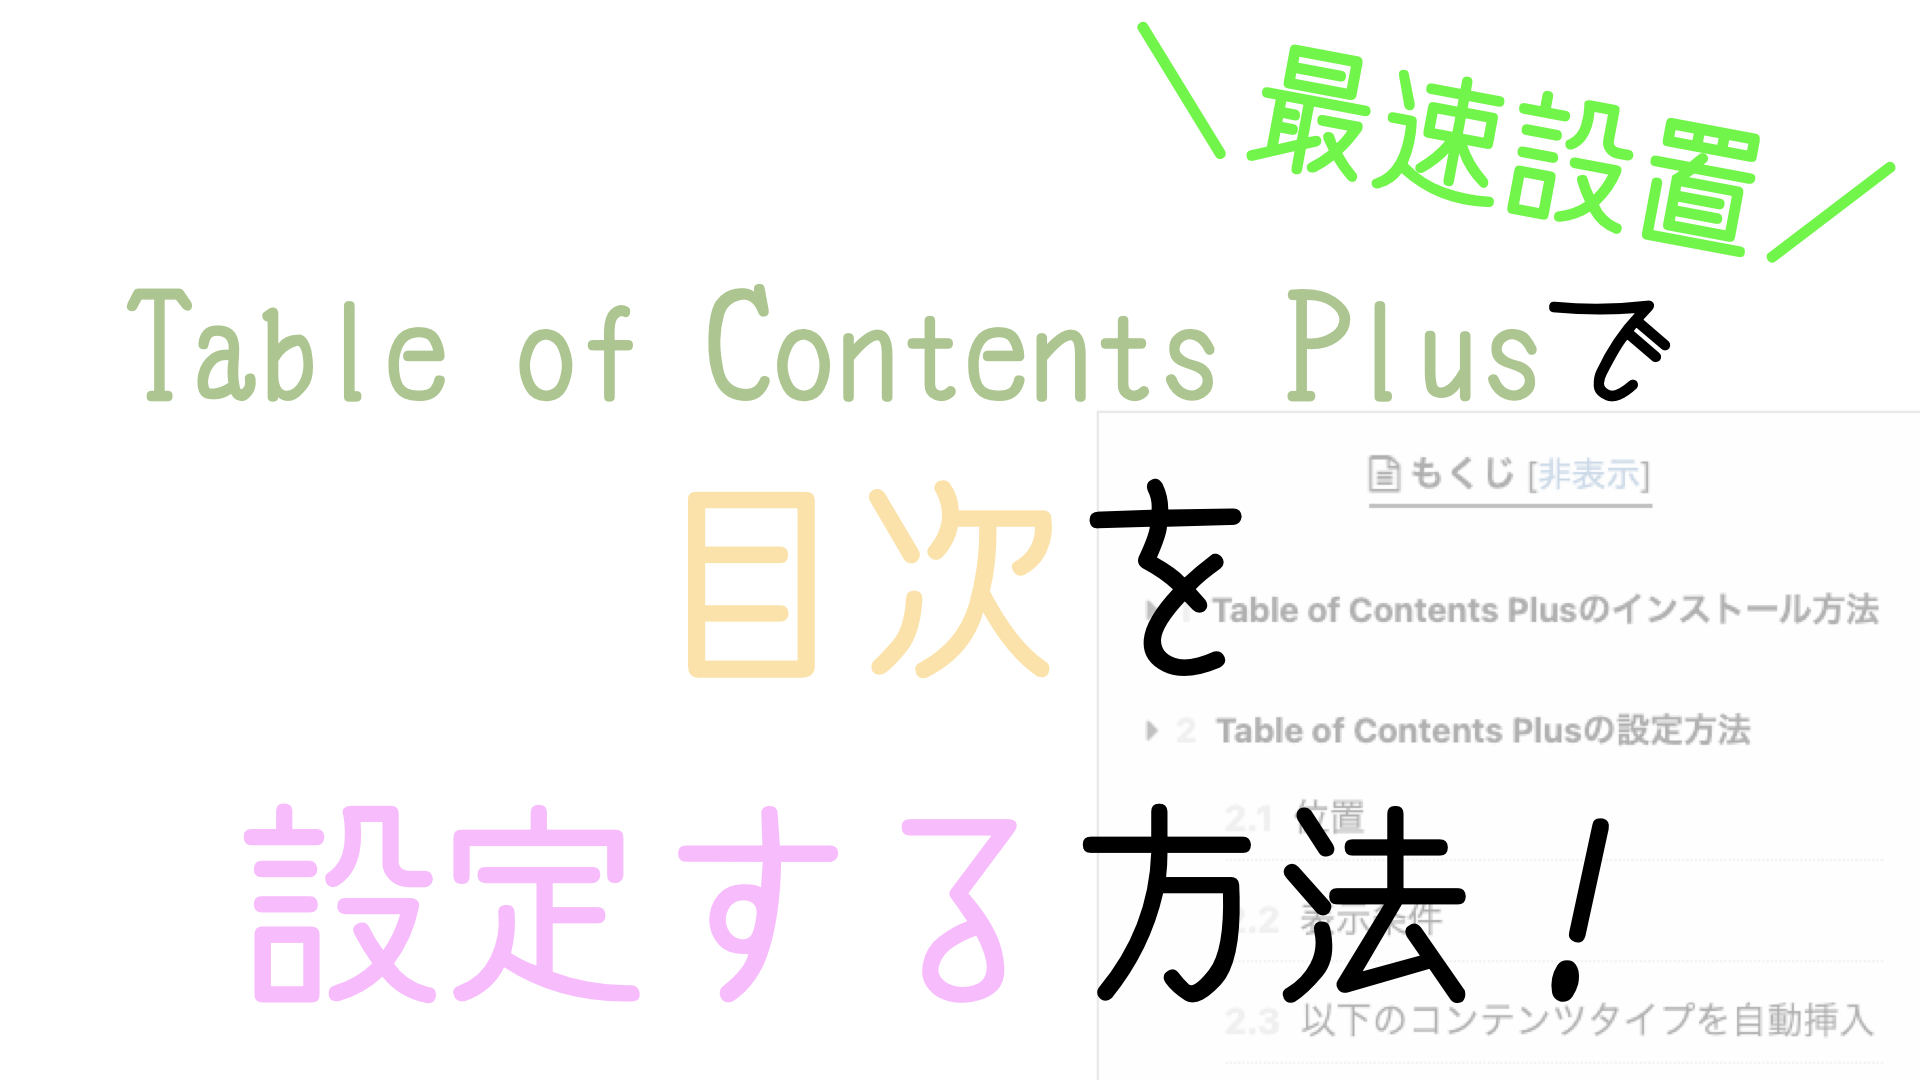 Table of Contents Plusで目次を設定する方法